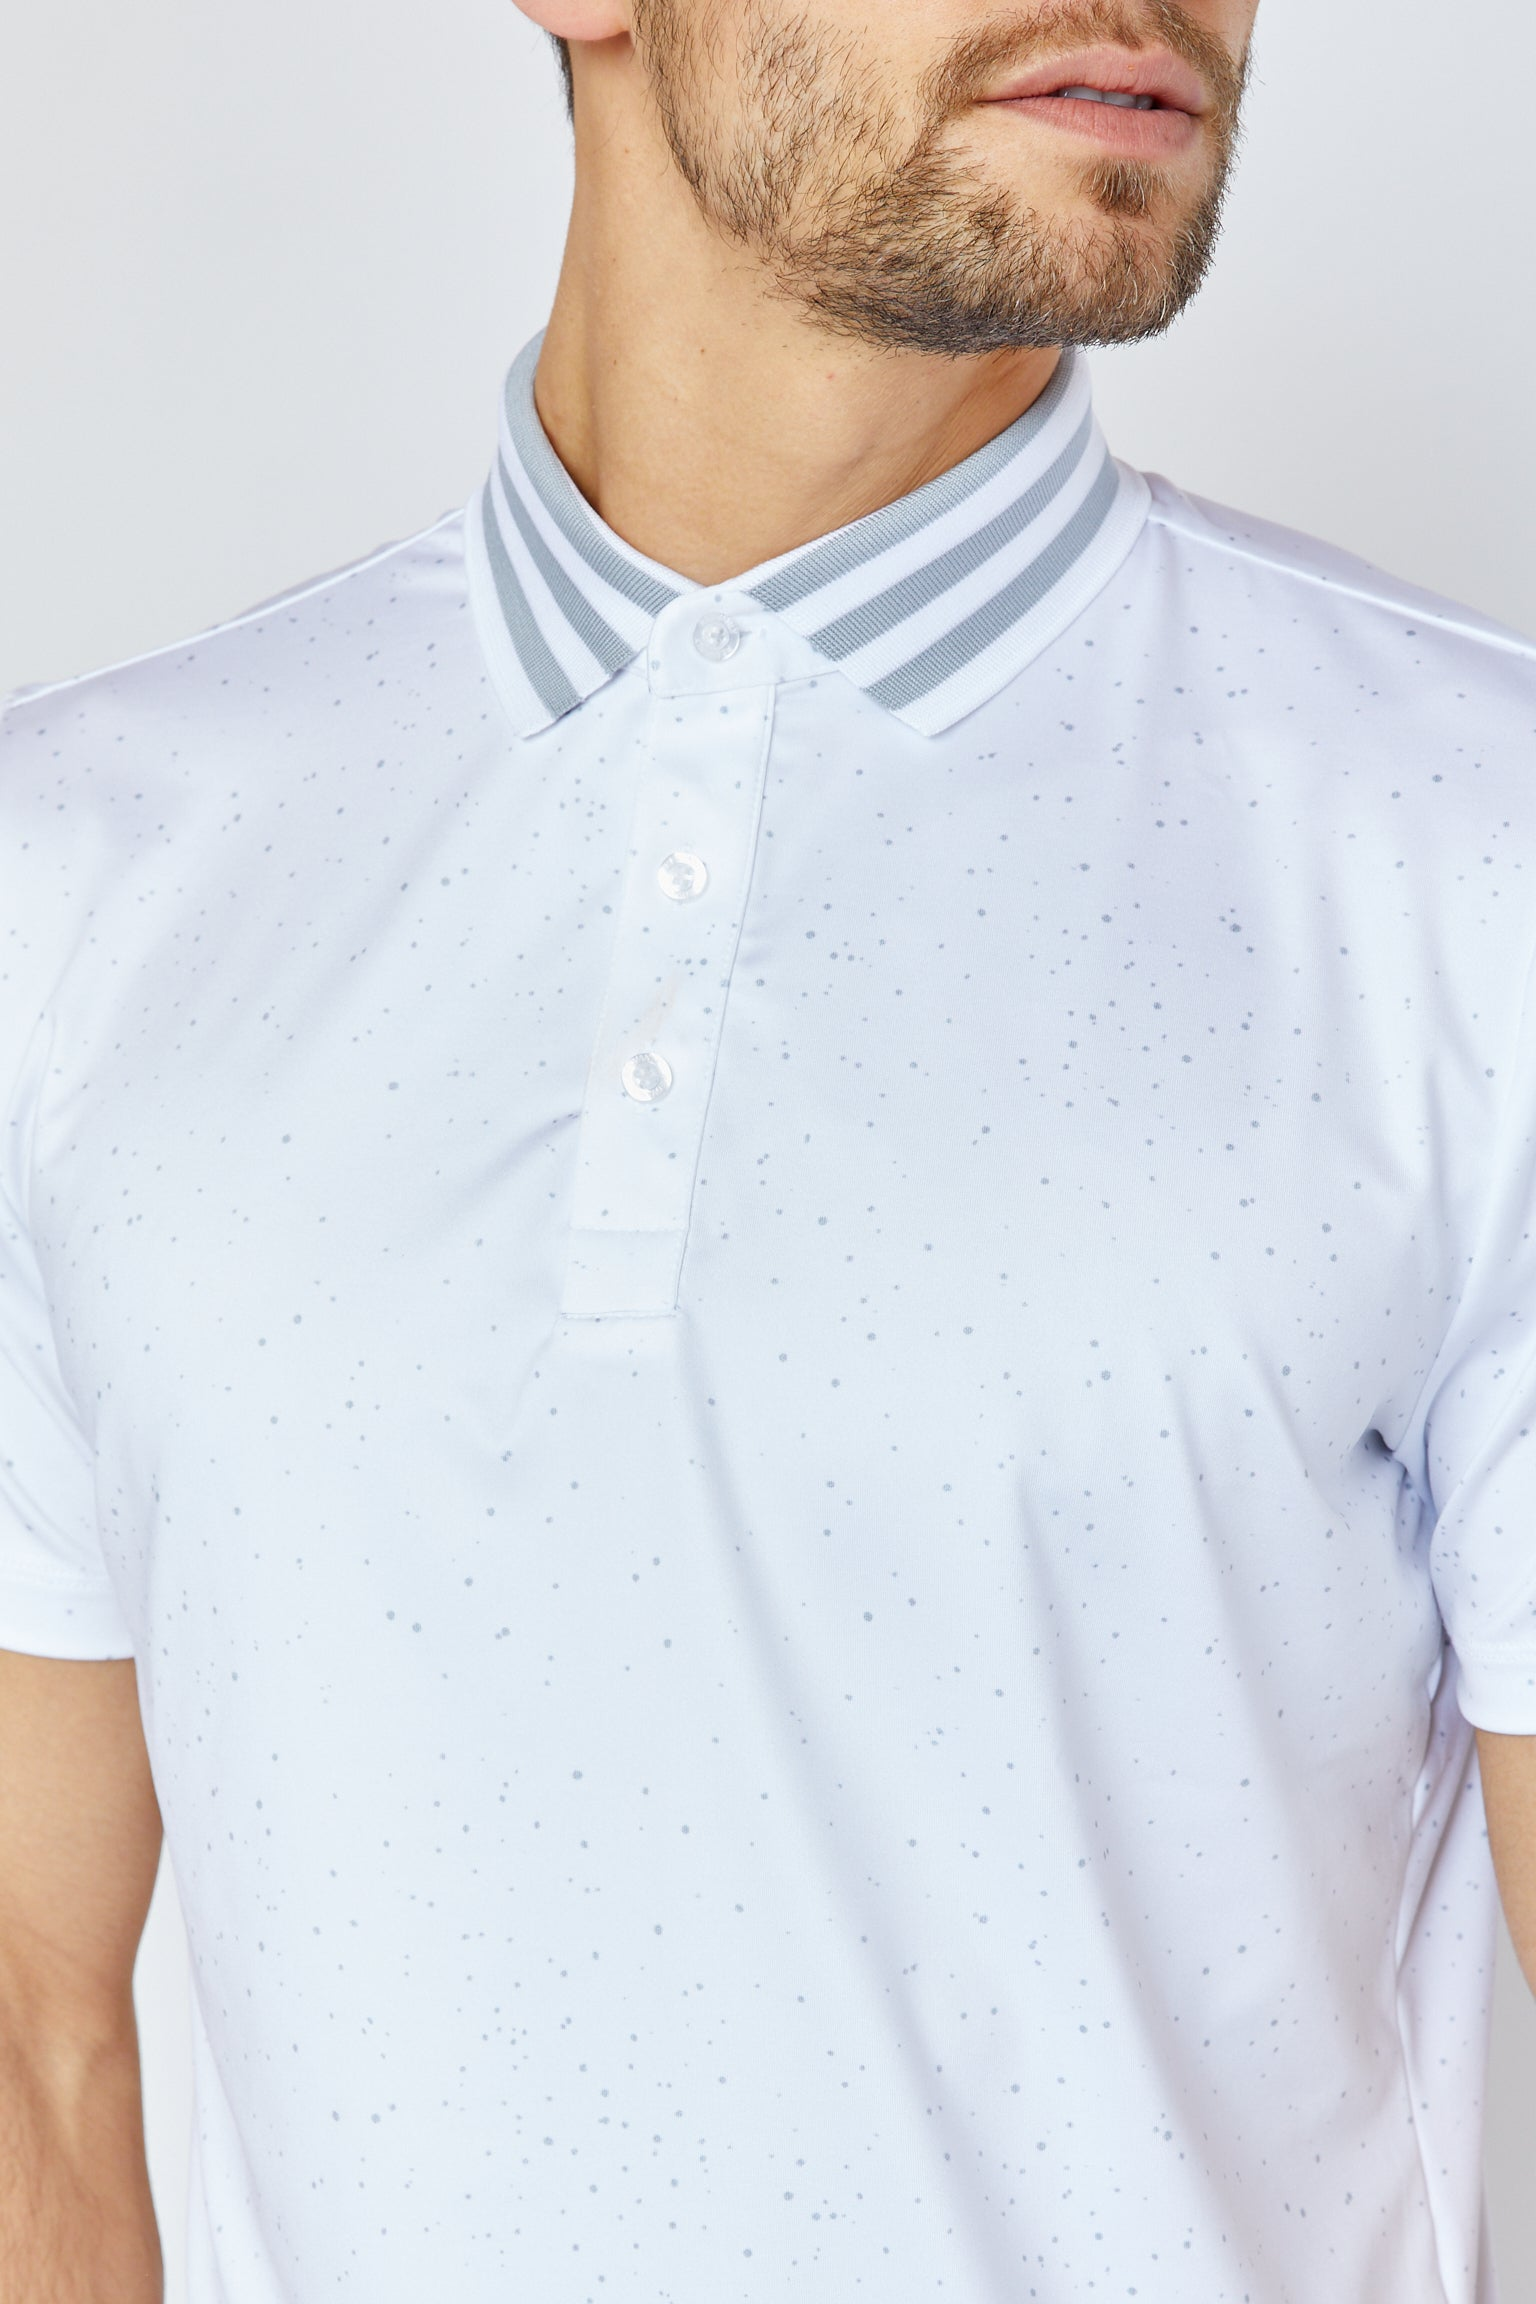 Galaxy Polo in White